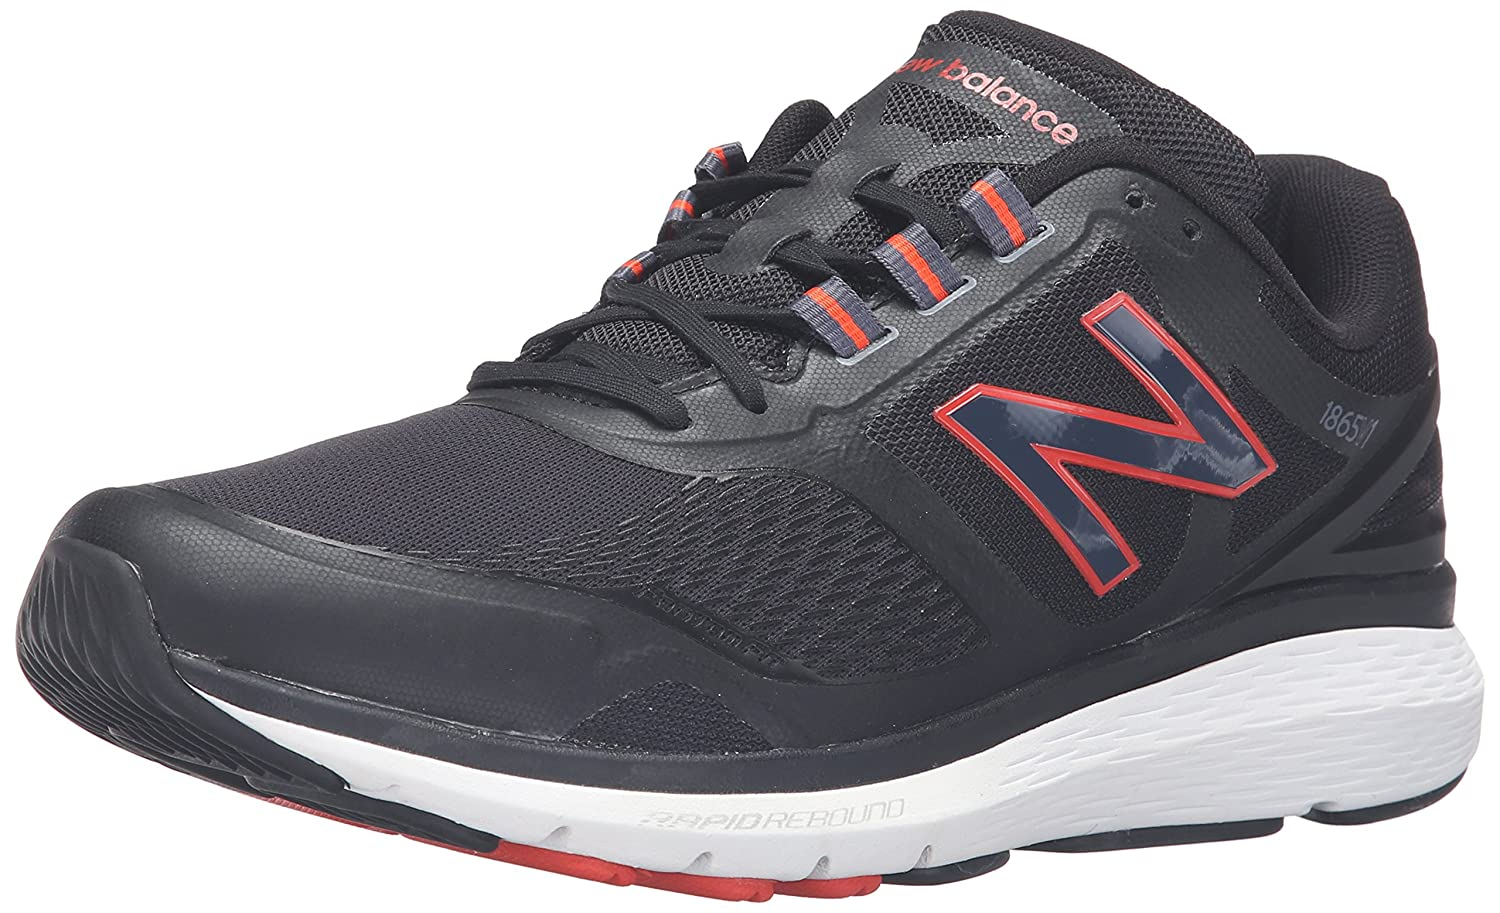 New Balance MW1865V1 Walking Shoe-M, Baskets pour Homme Noir/Noir 41 EU